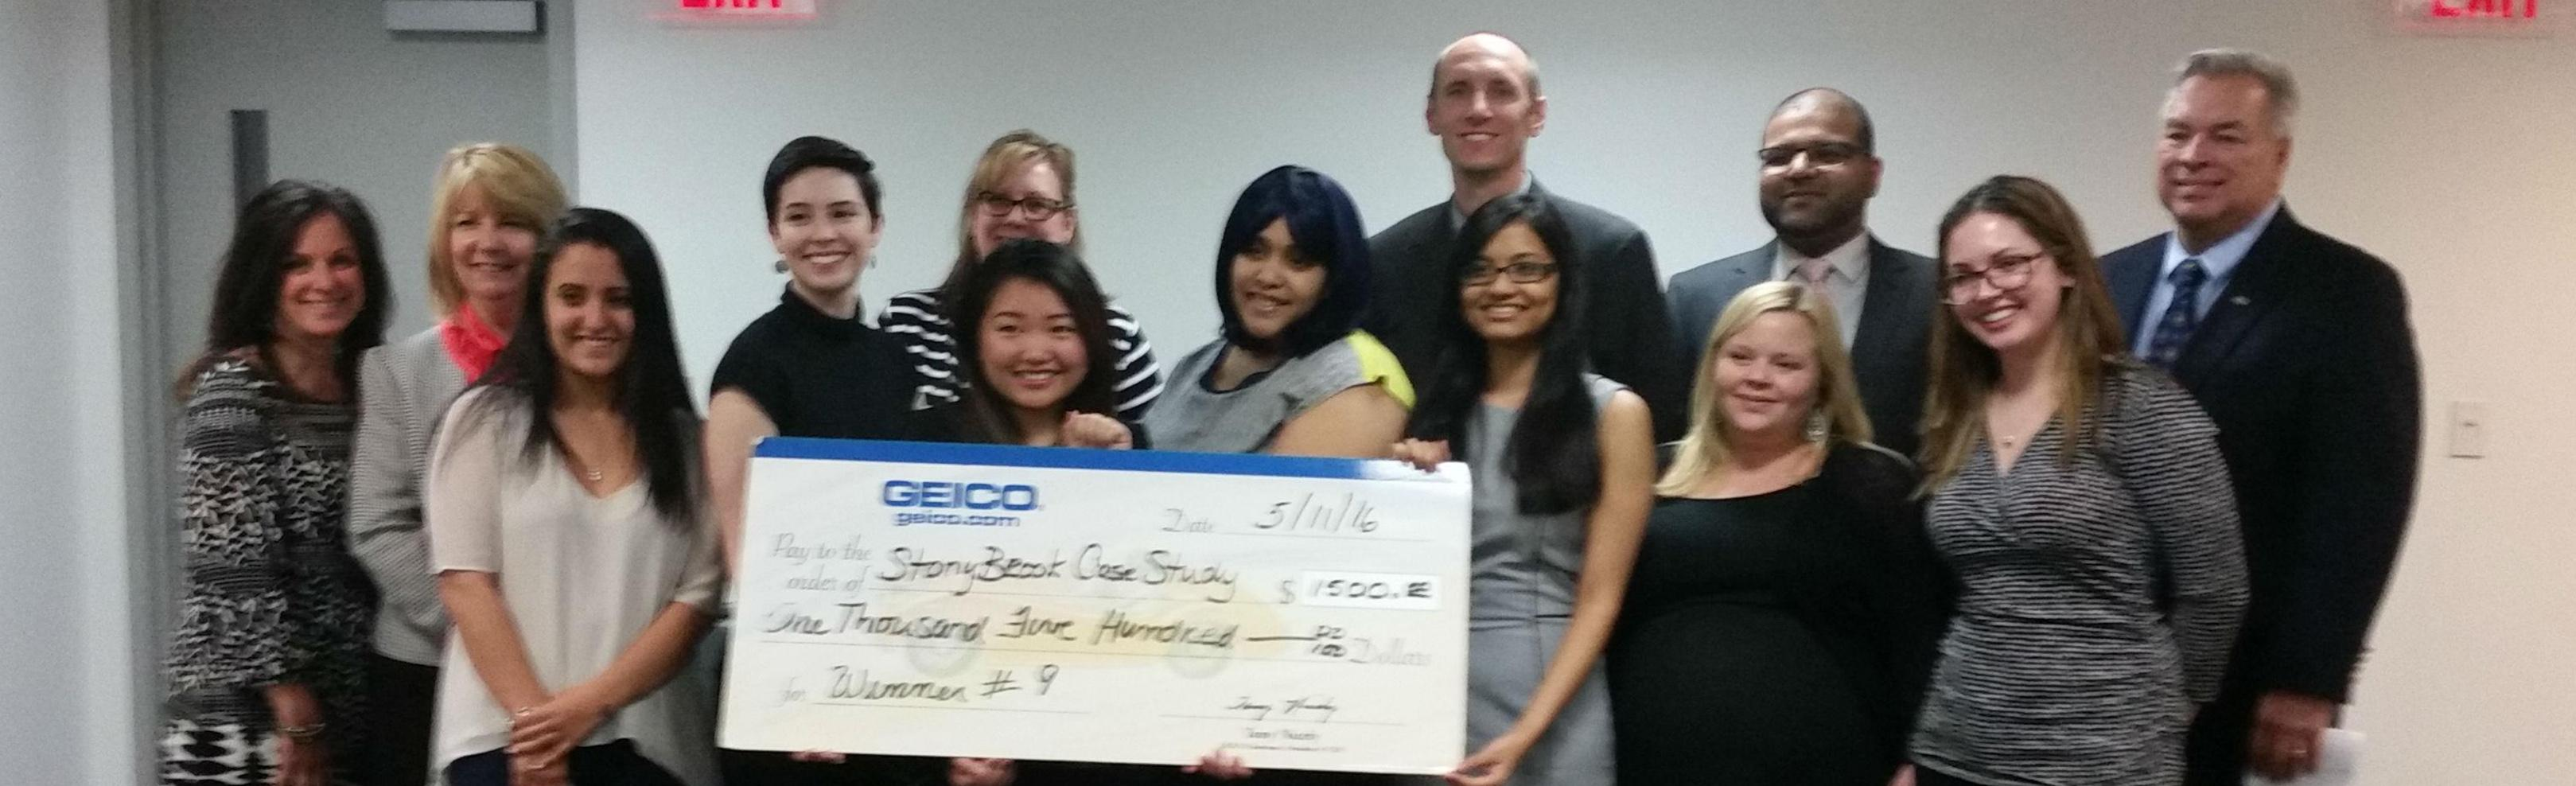 College of Business Students Gain Experience & Scholarships With GEICO